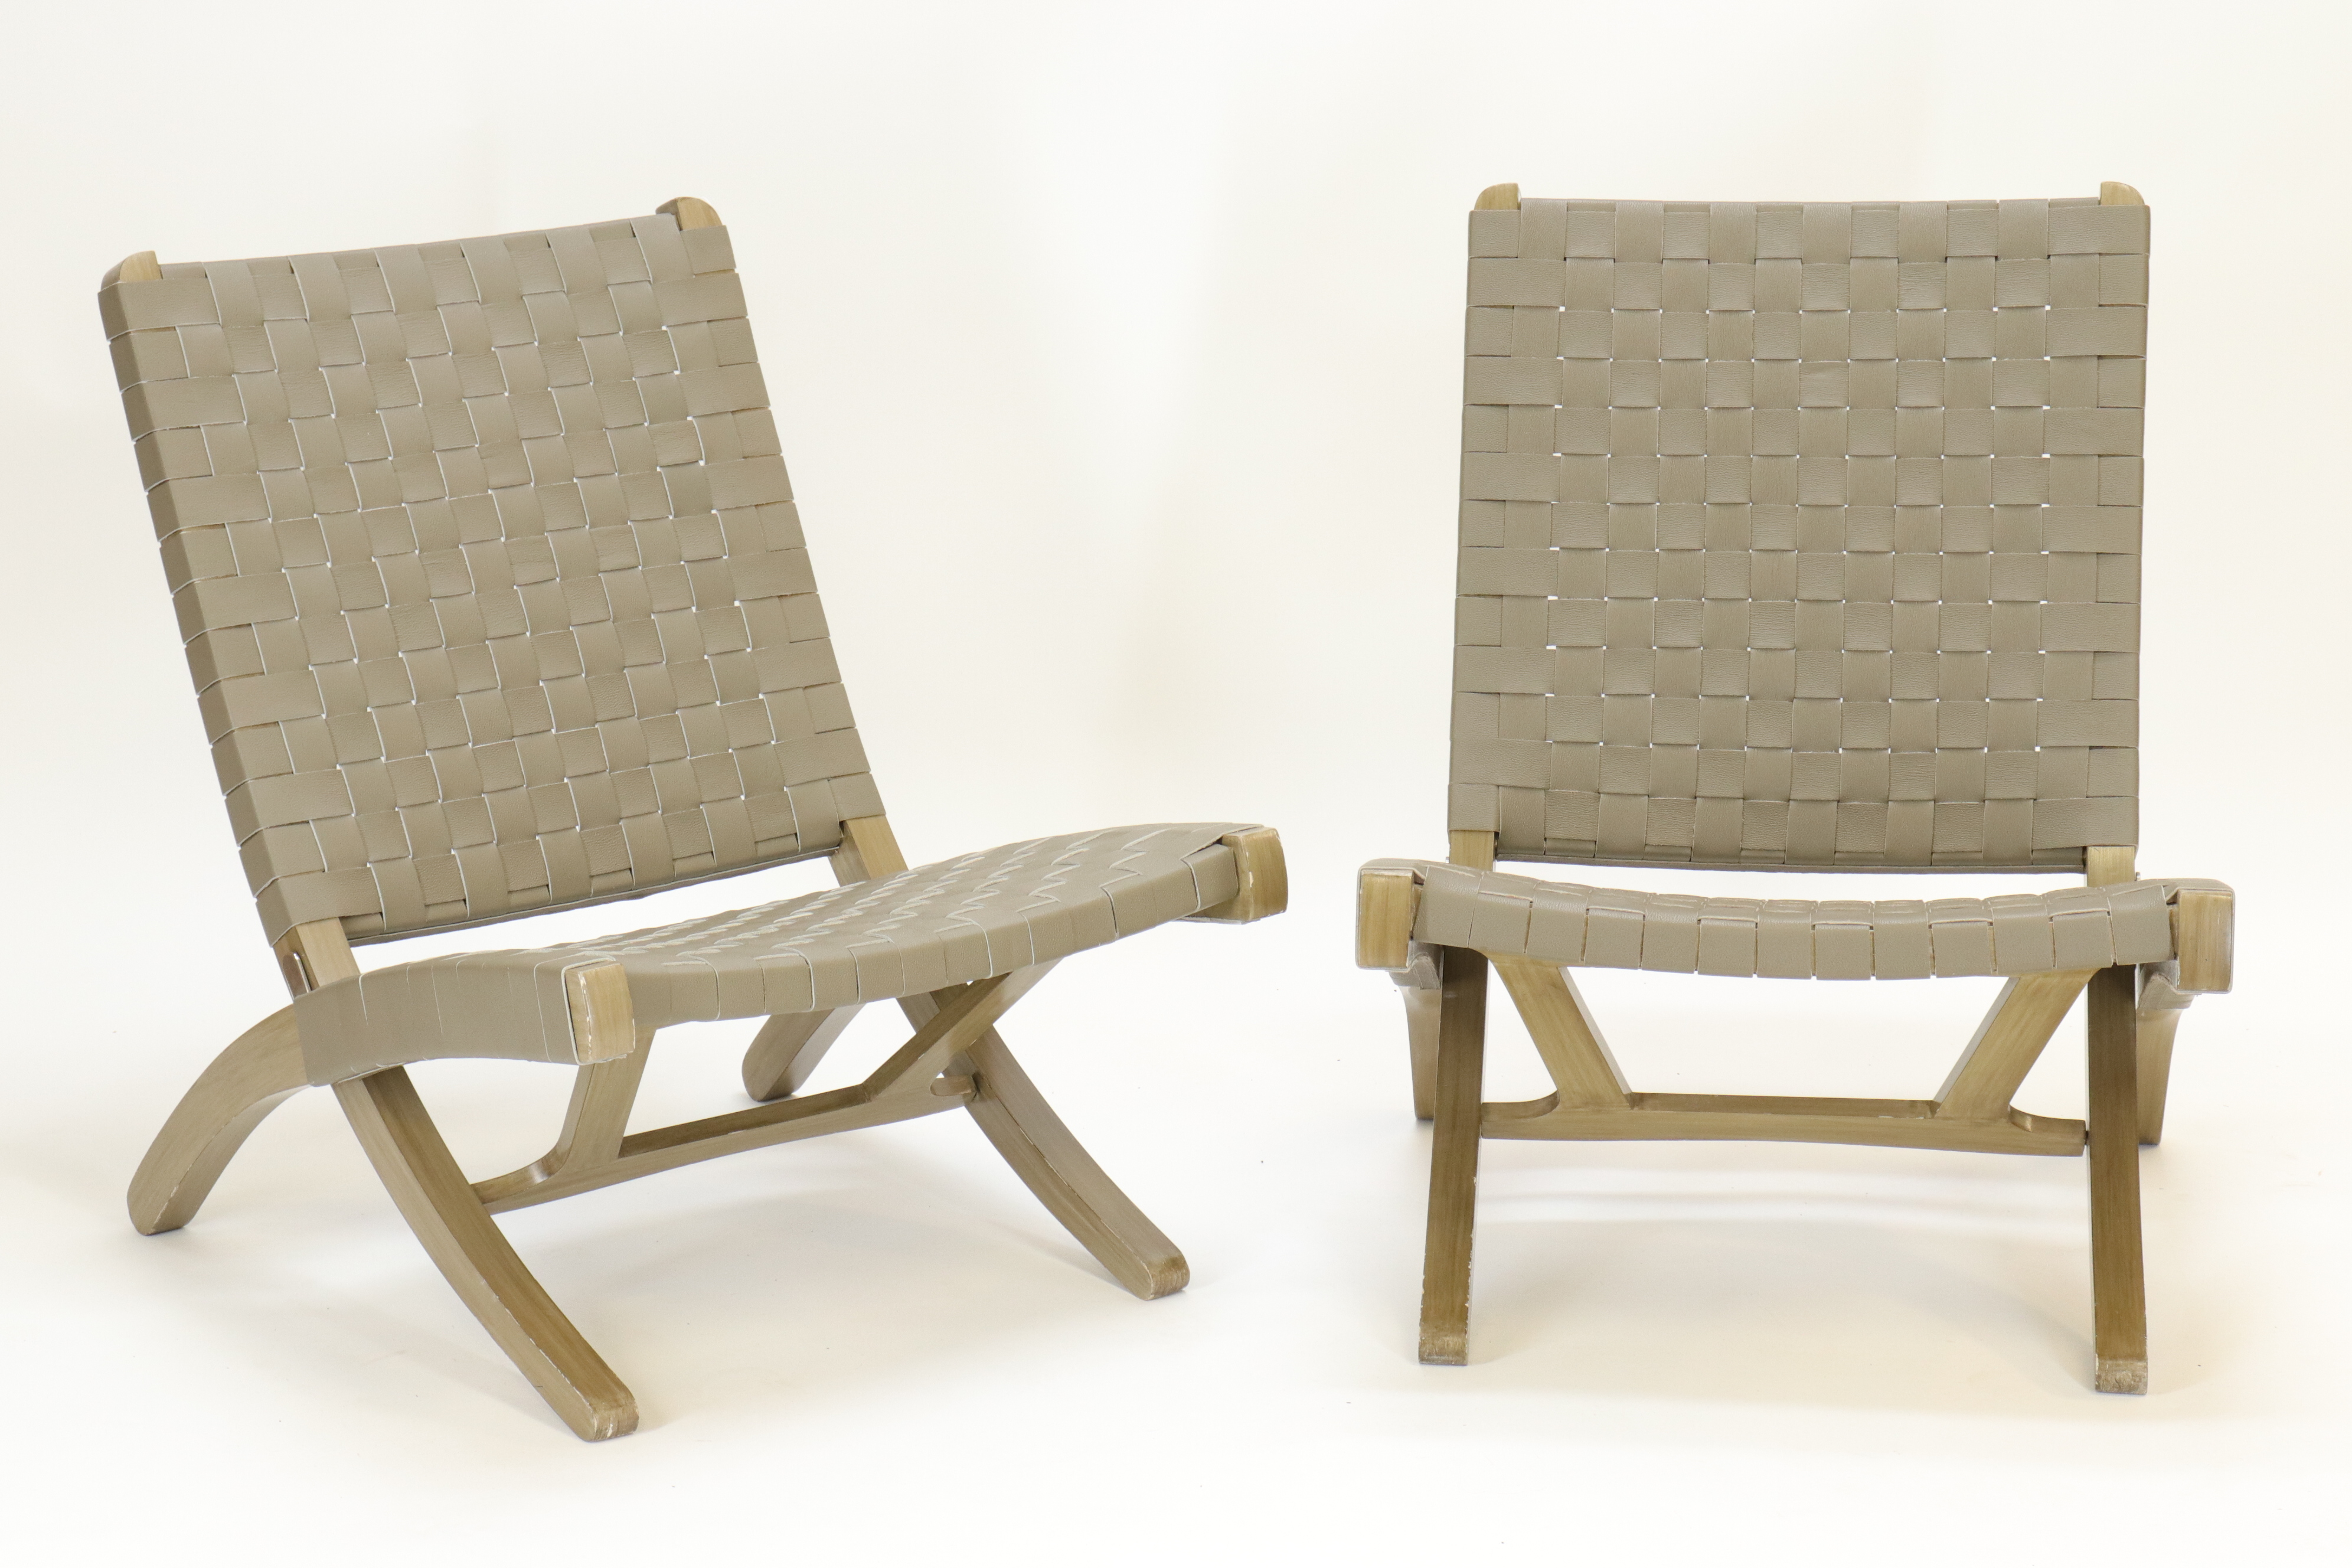 Pair Contemporary Green Painted Leather Woven Folding Chairs.500.800.